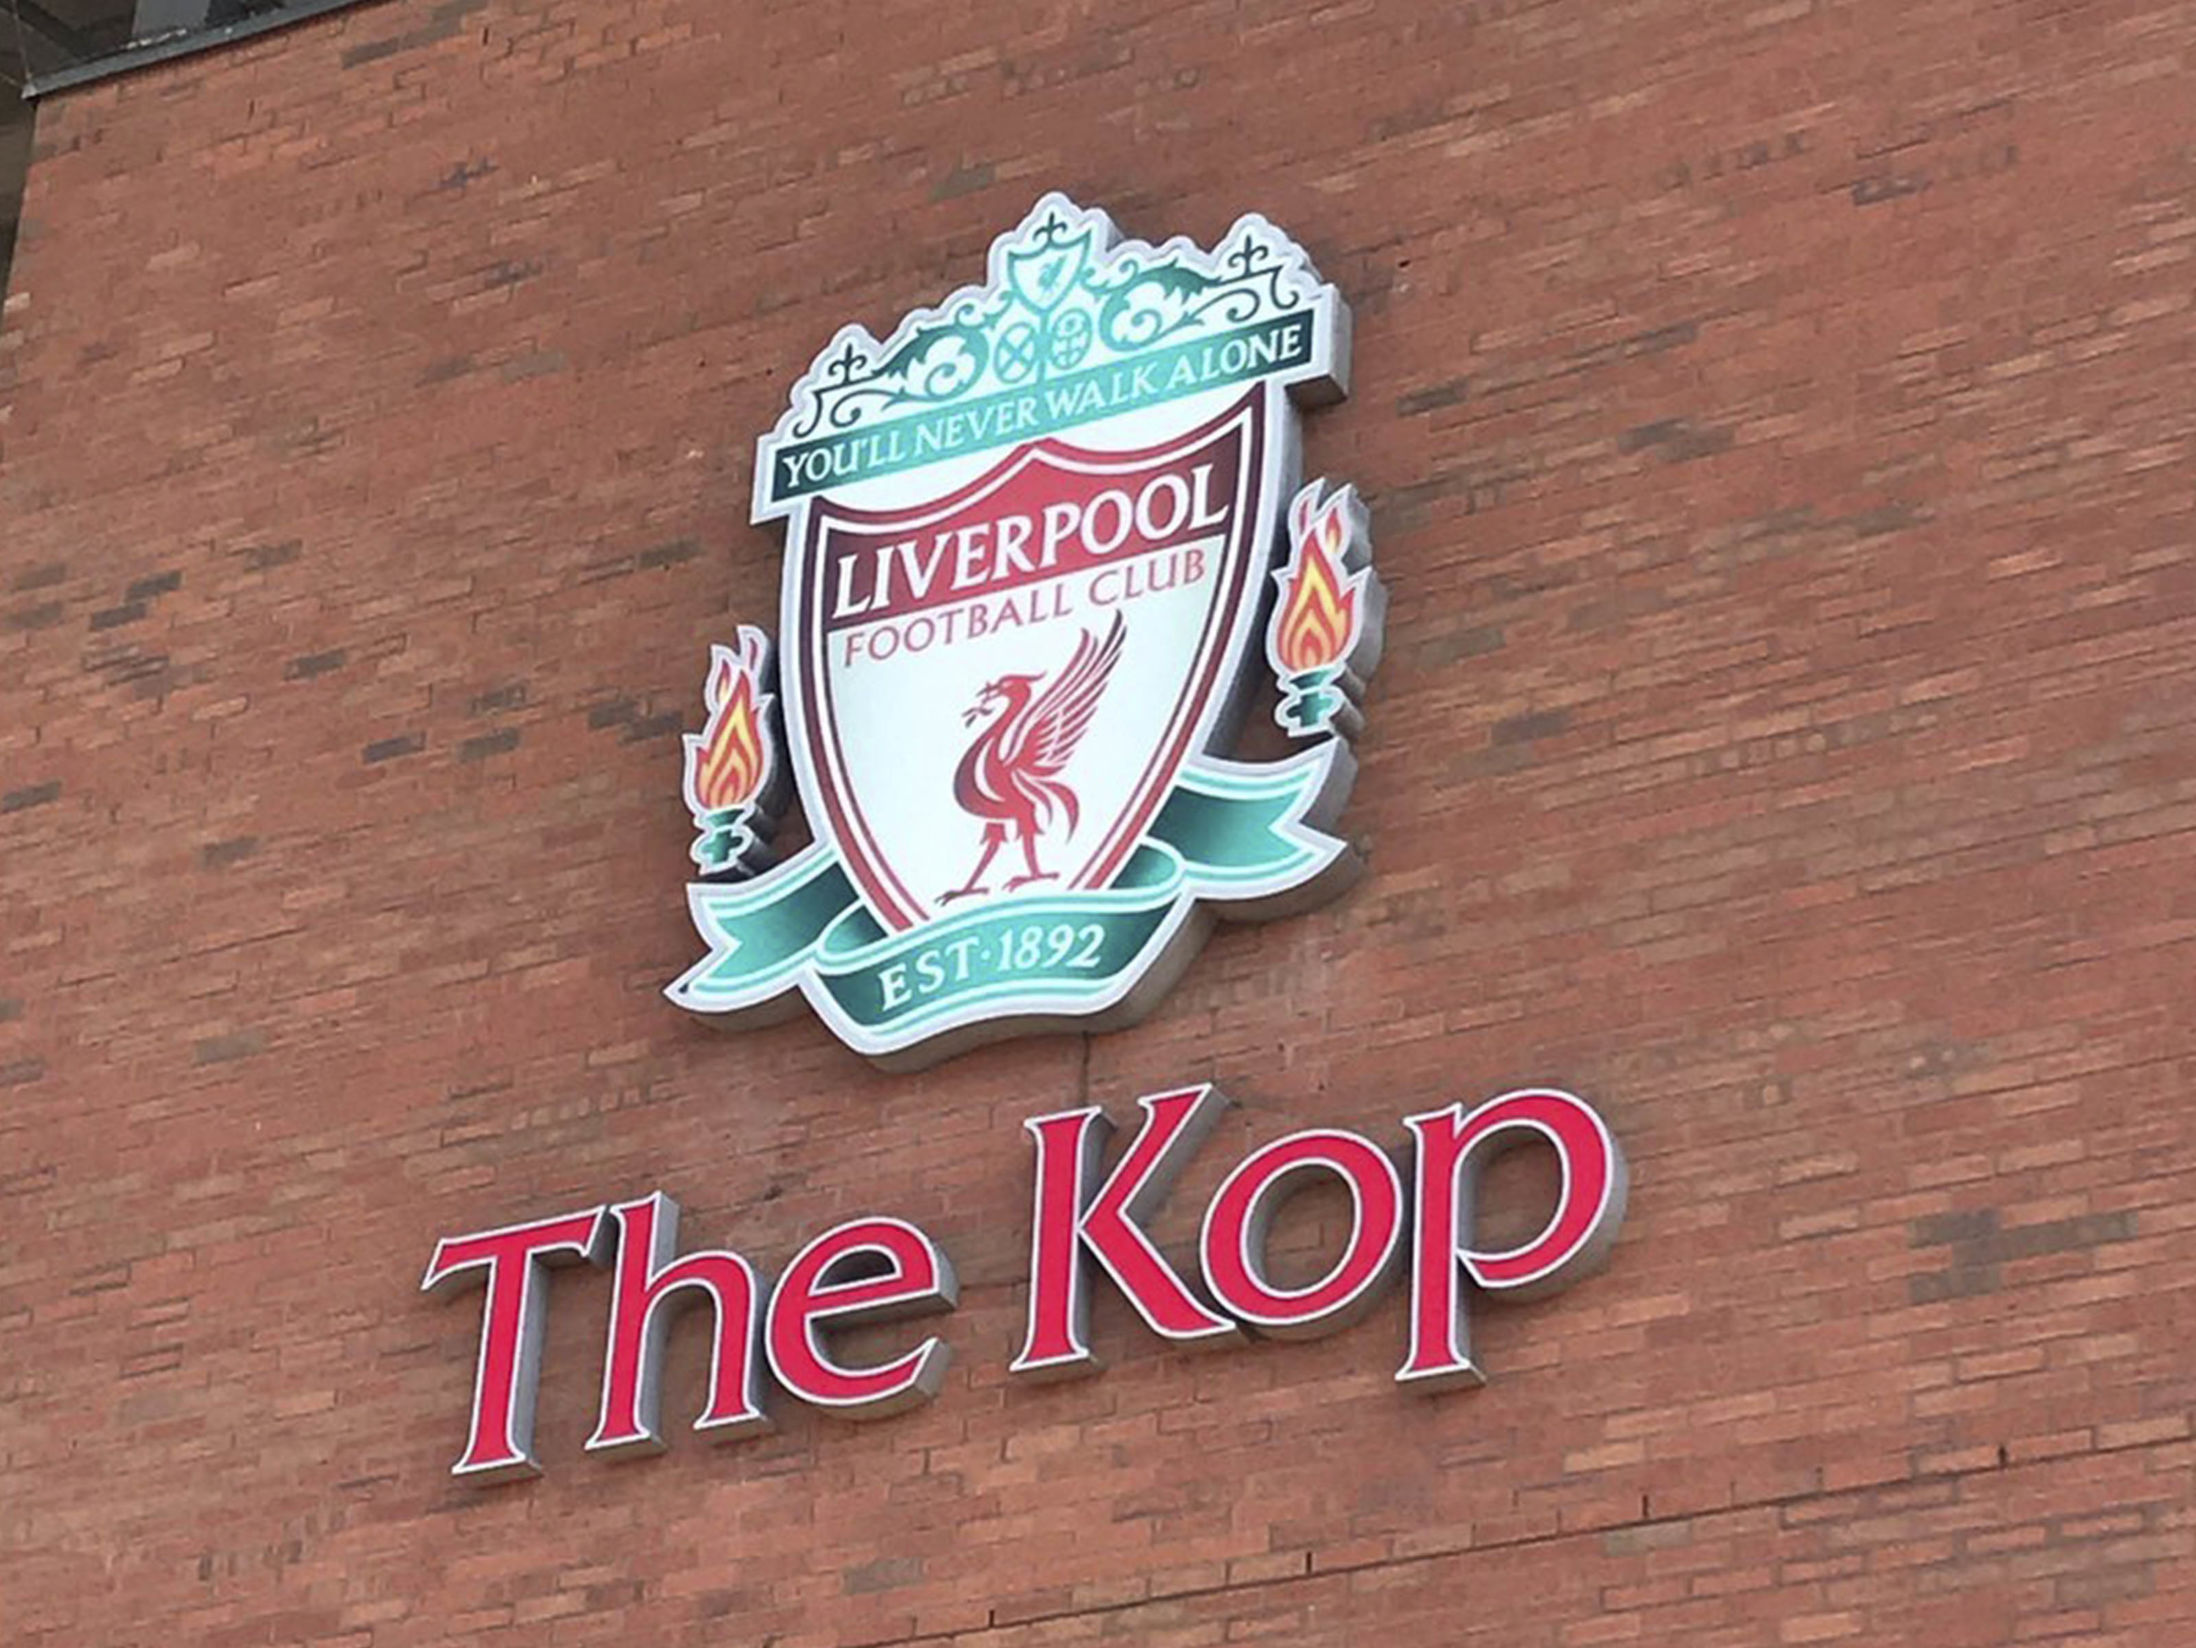 10 Large Christmas Party Venues in Liverpool - Liverpool Football Club